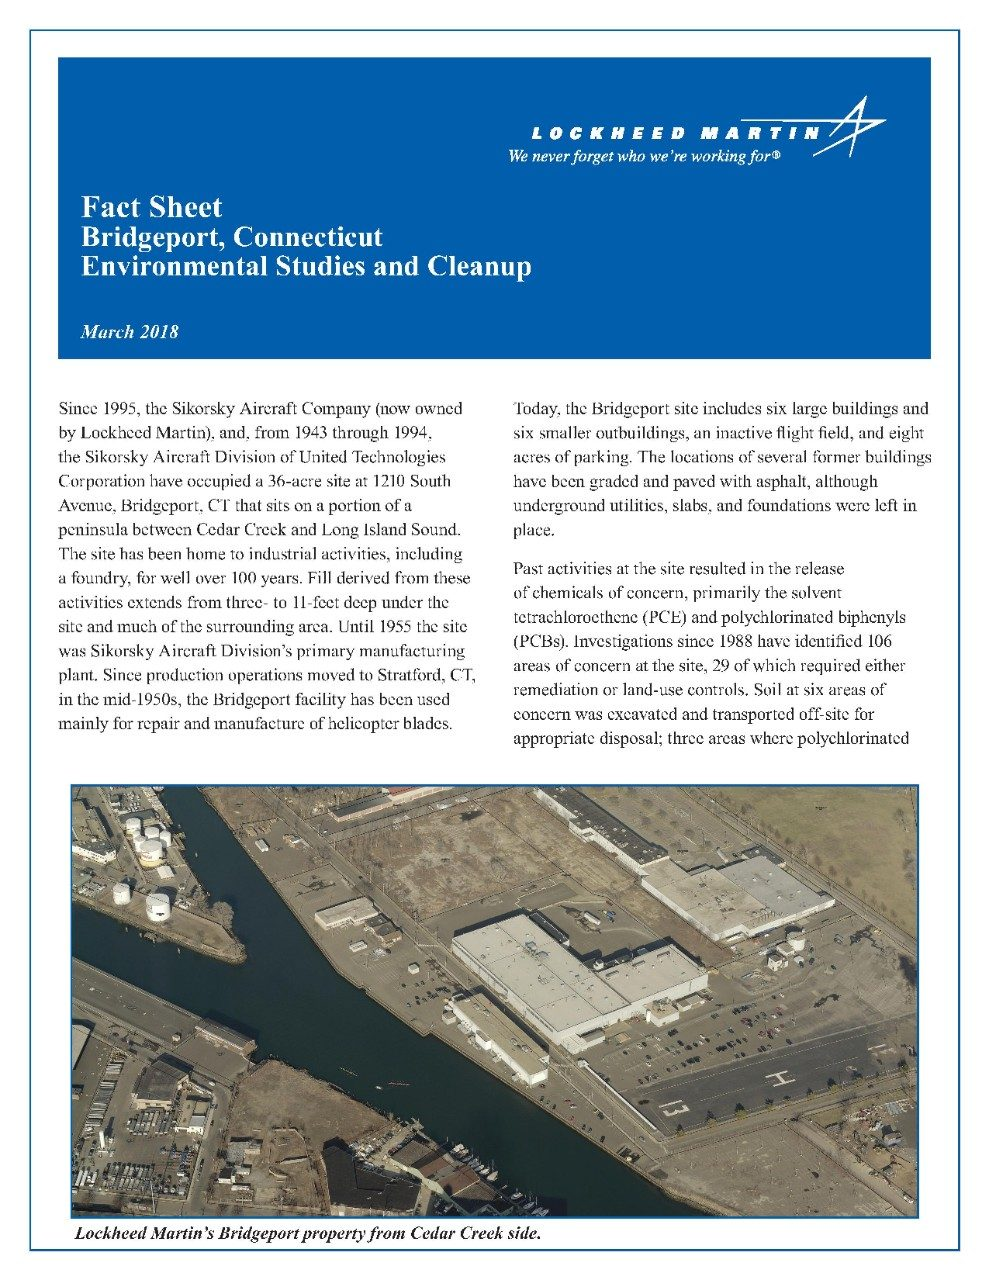 Bridgeport Fact Sheet 2018